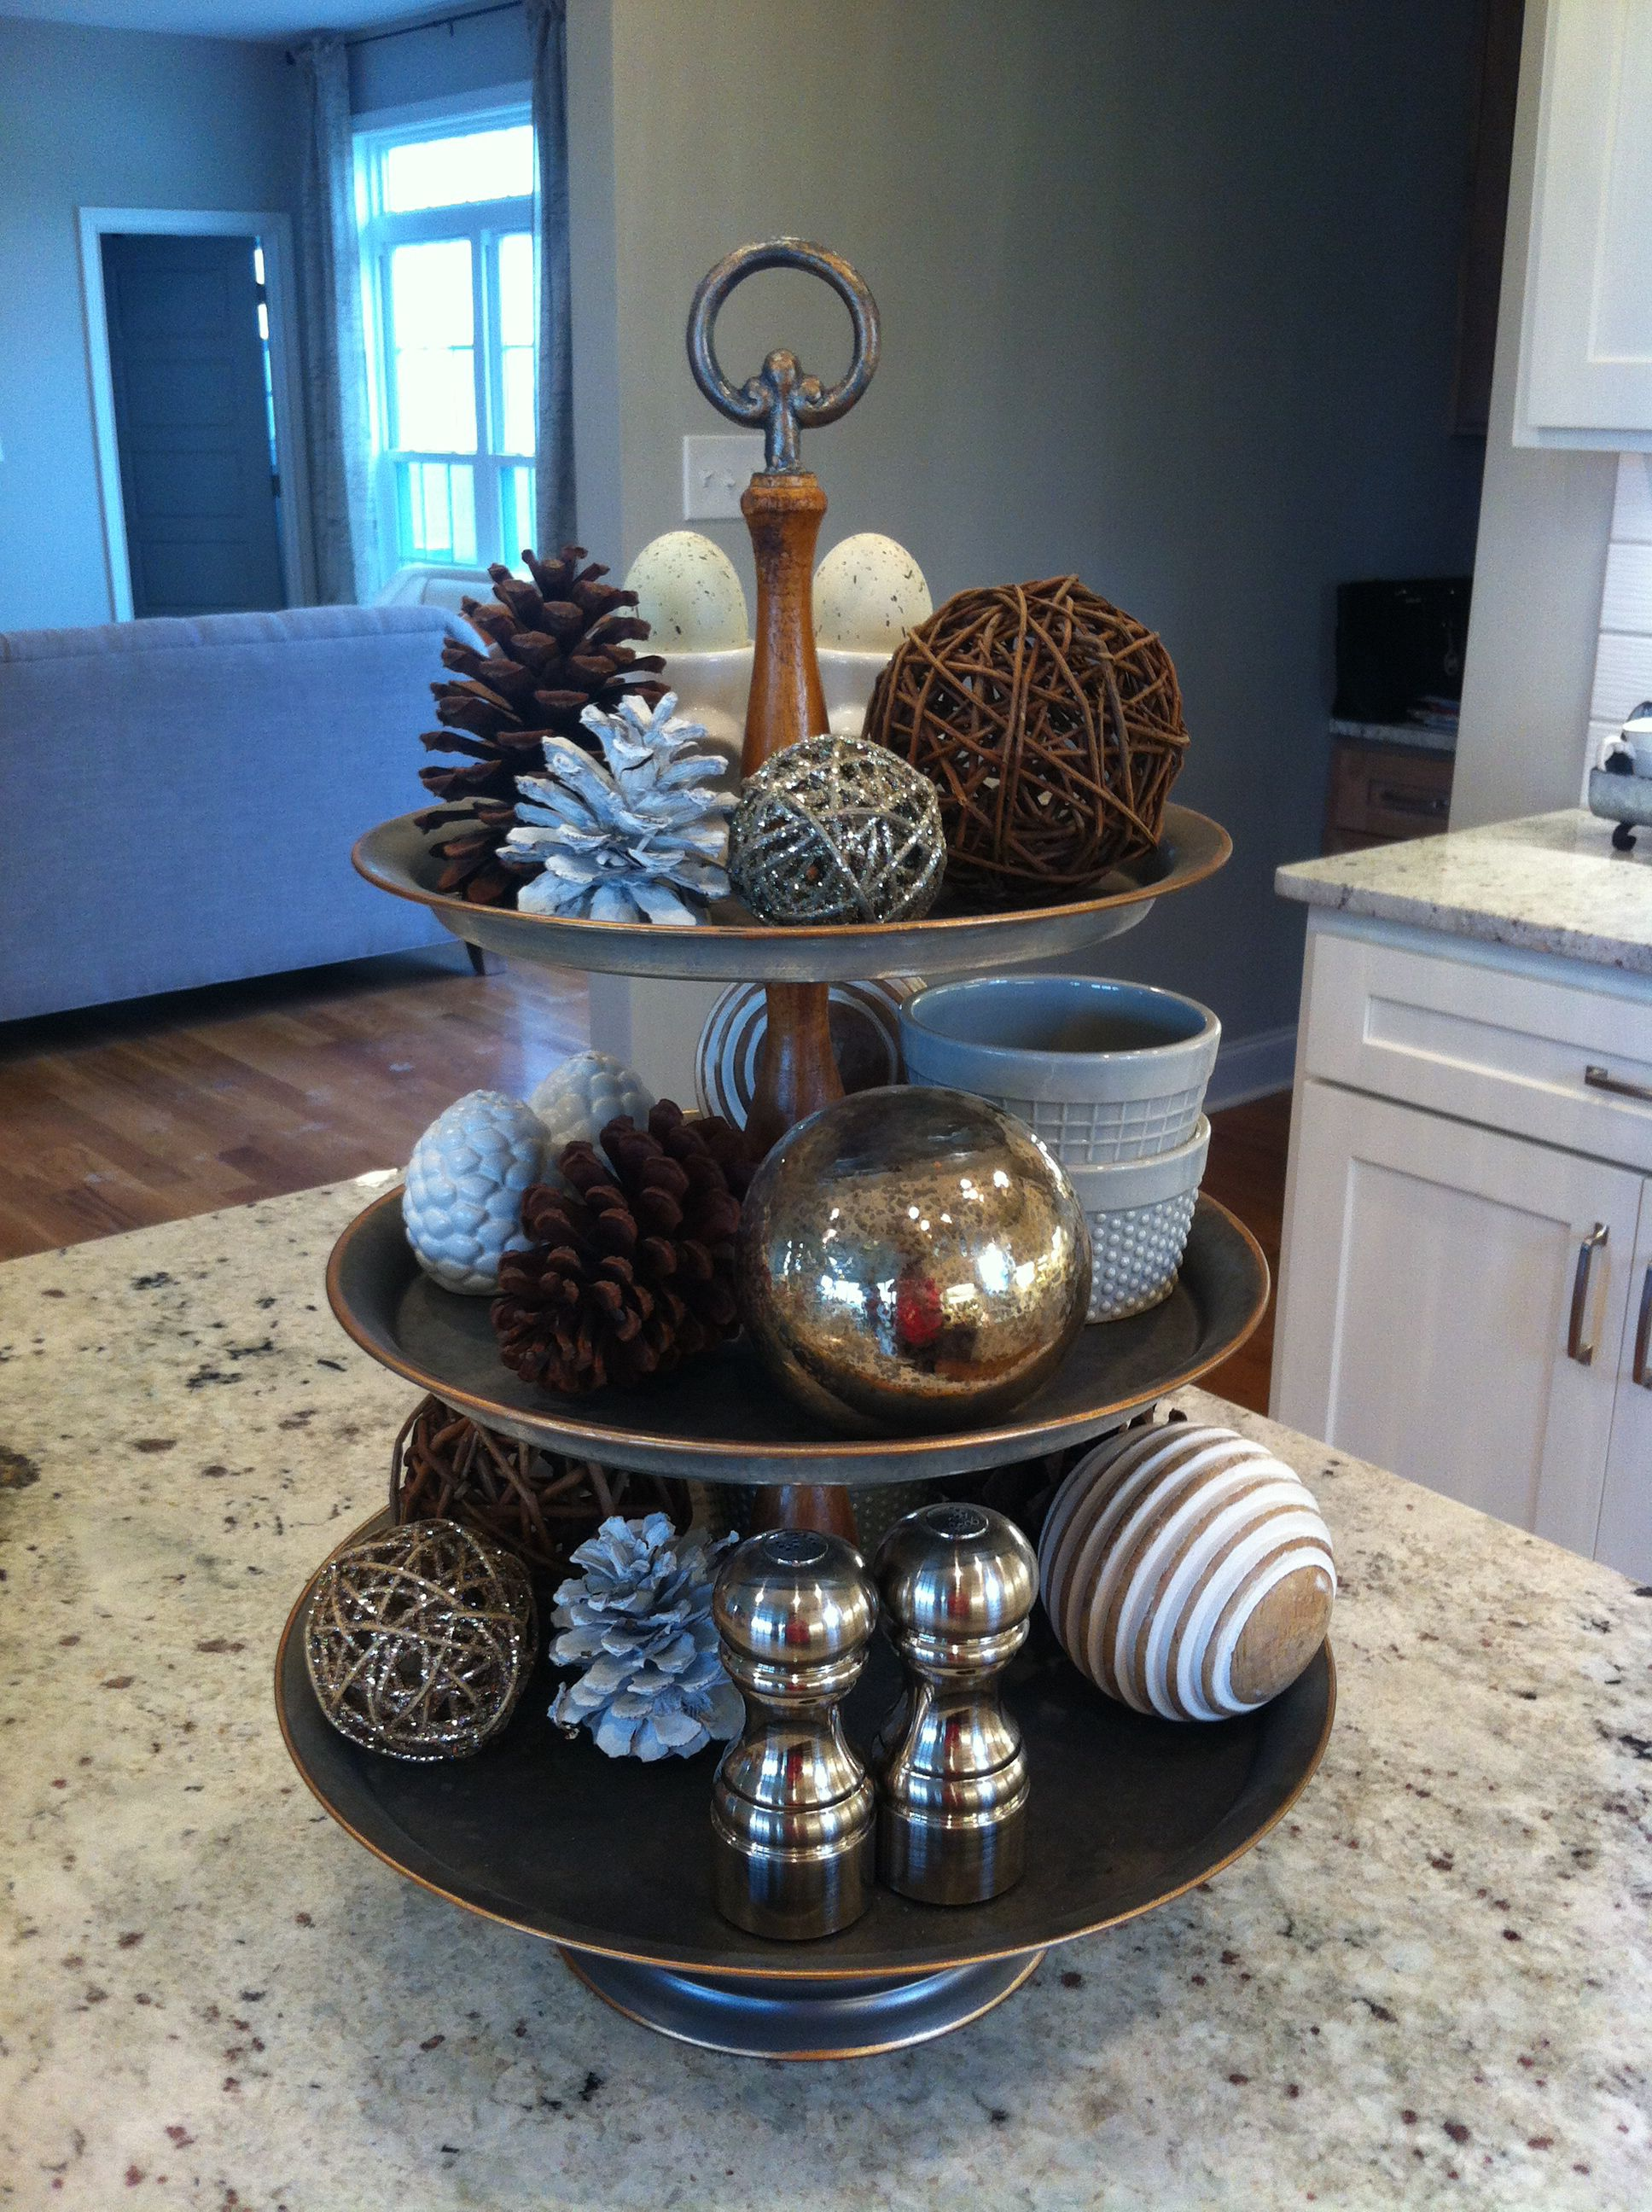 Winter Tiered Tray Stand Kitchen Tray Decor Kitchen Table Centerpiece Tiered Stand